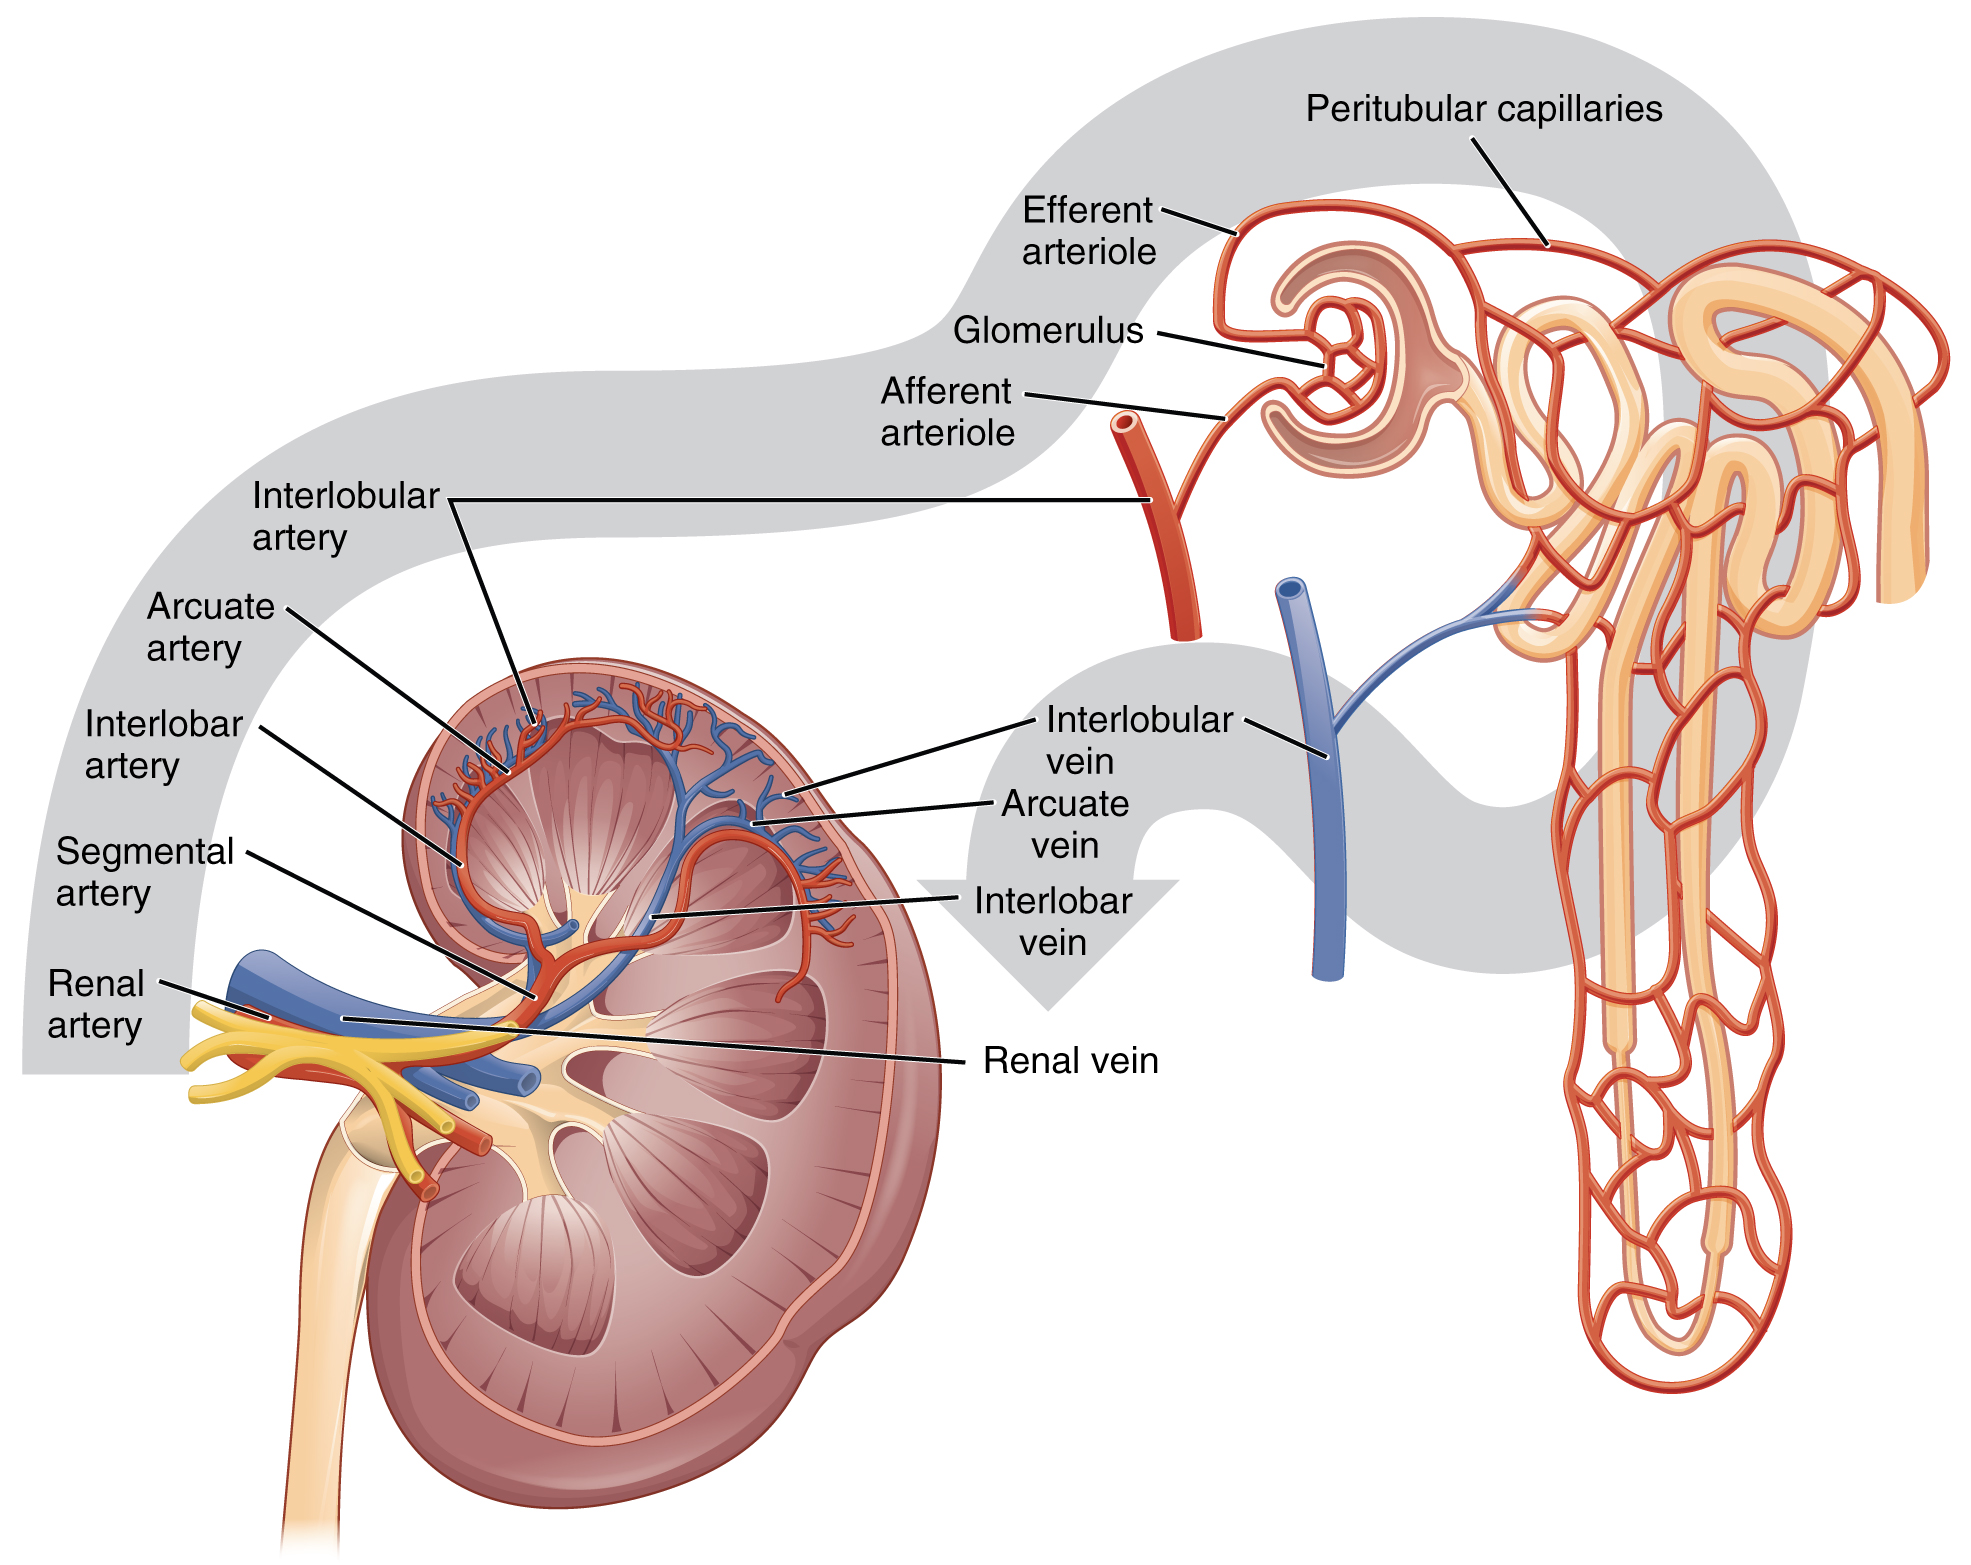 25 3 Gross Anatomy of the Kidney – Anatomy and Physiology